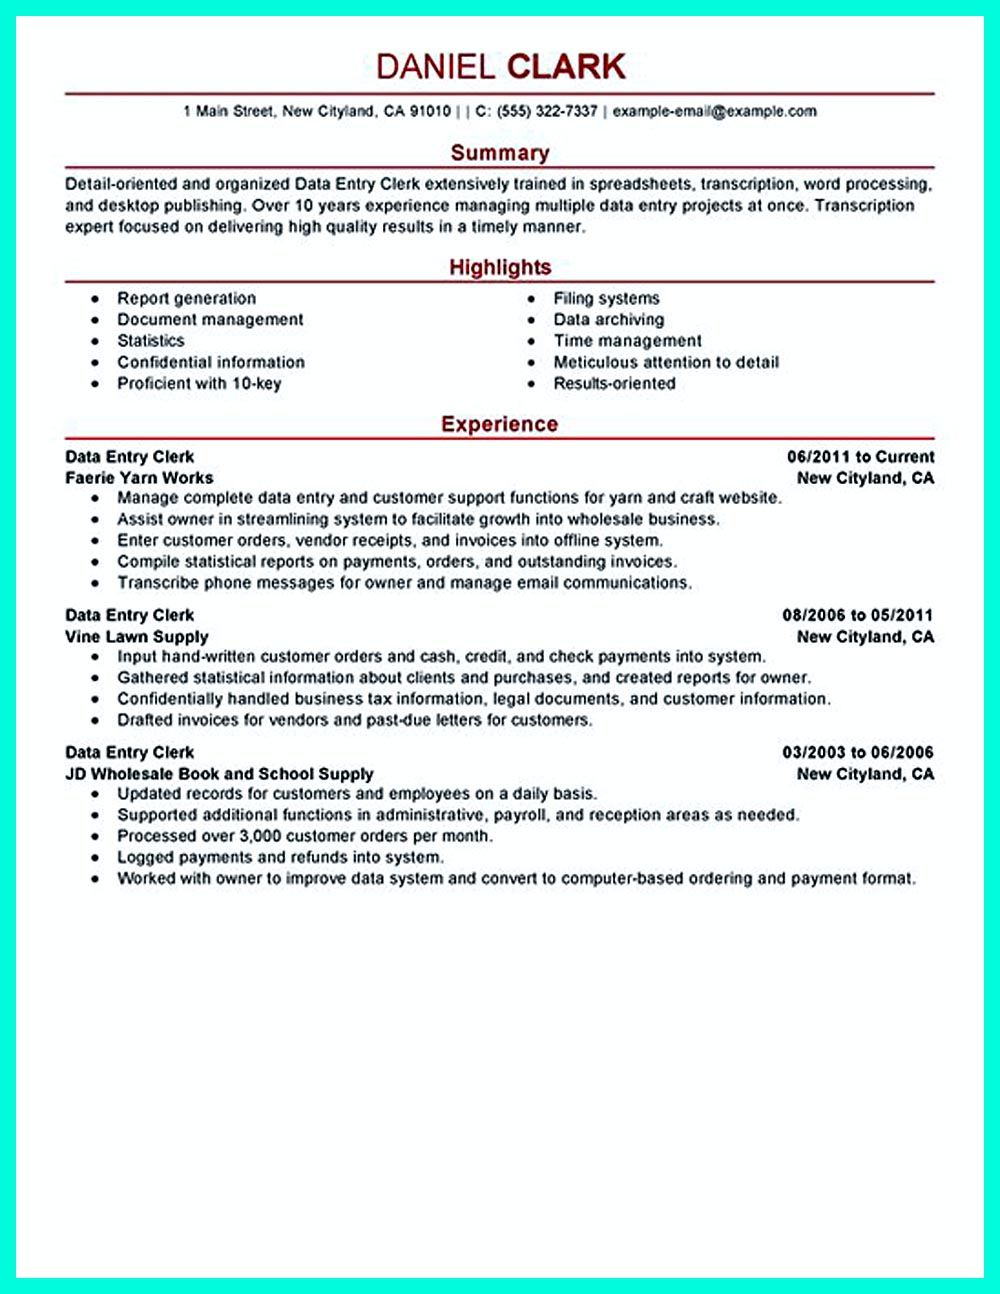 Marketing Resume Template Your Data Entry Resume Is The Essential Marketing Key To Get The